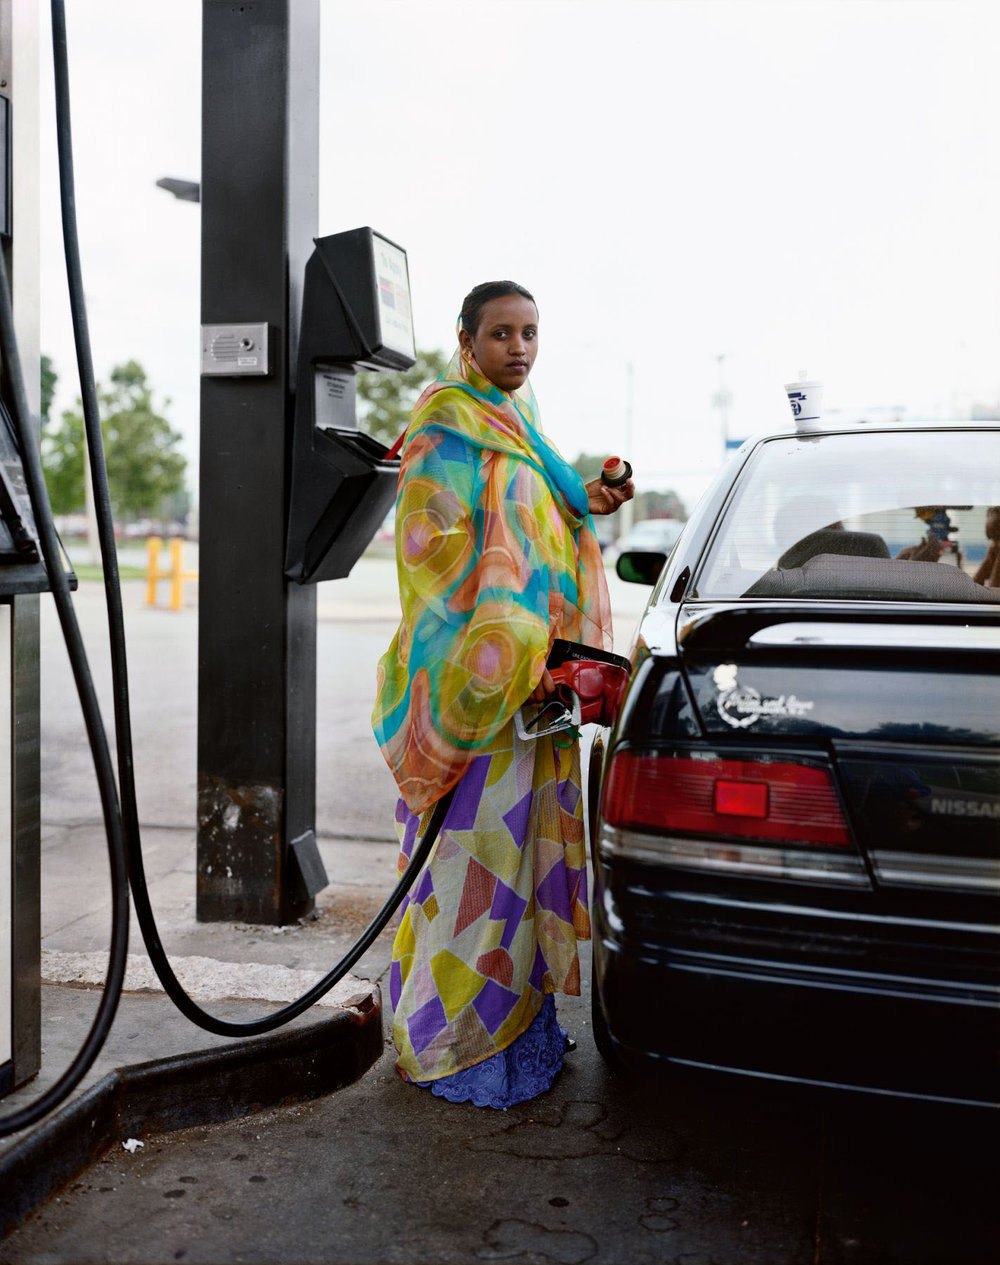 A Woman Pumping Gasoline, Kasas City, Kansas, June 1999